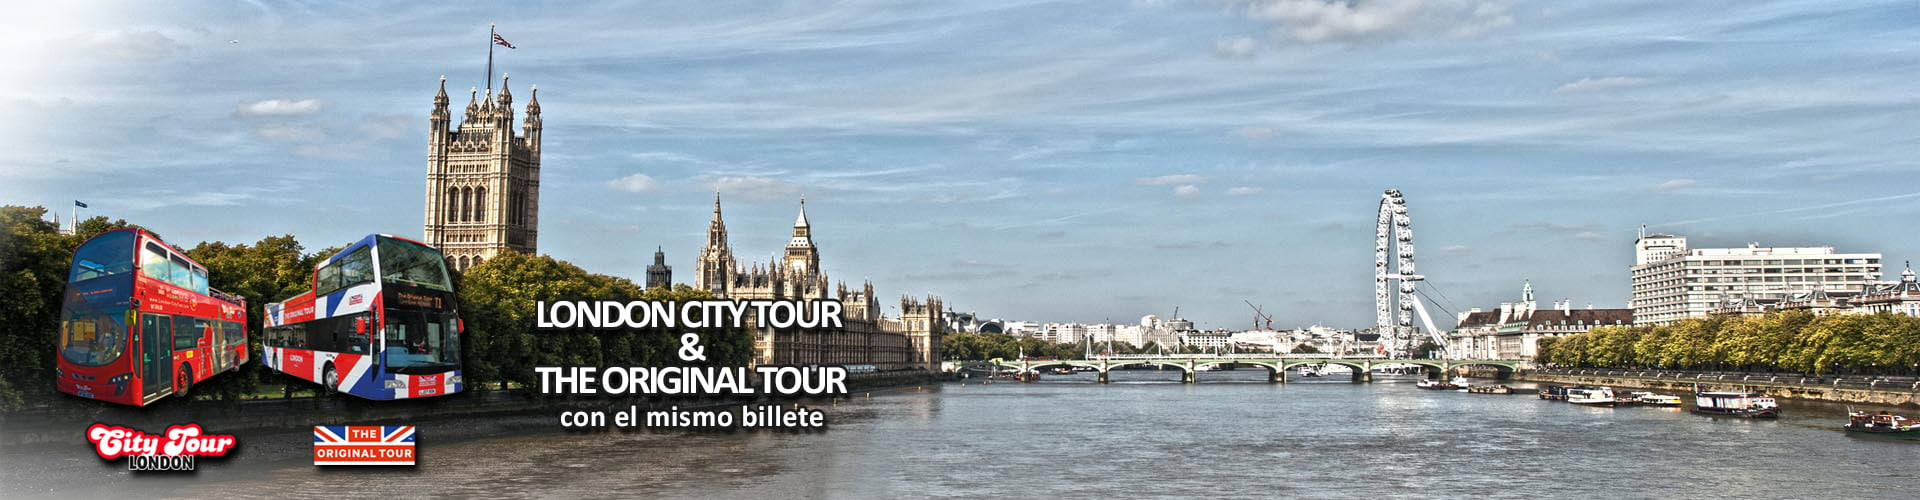 London City Tour